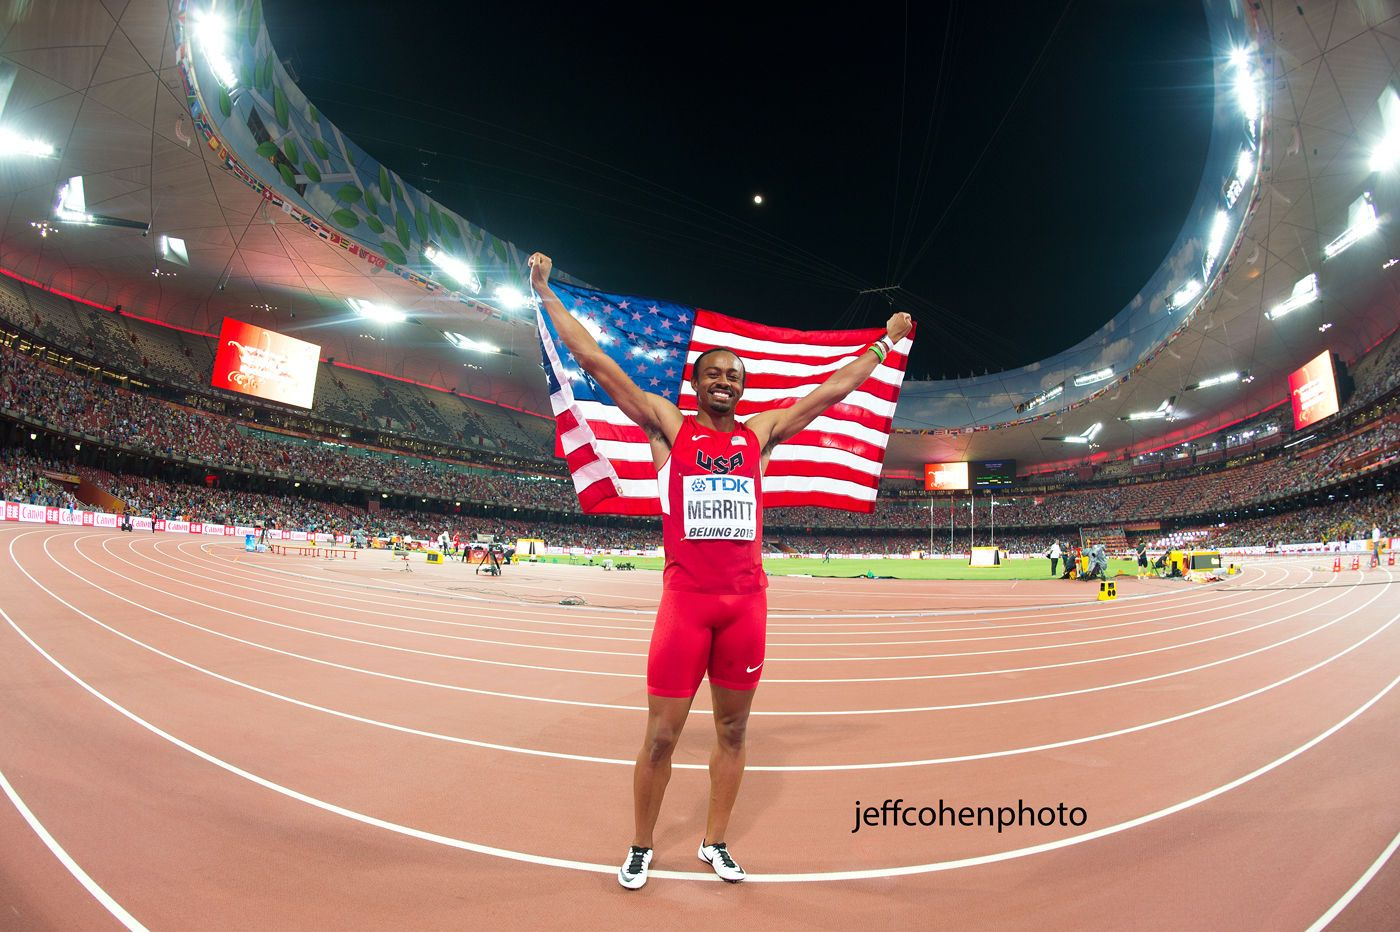 1beijing2015_night_7_aries_merritt_flag_jeff_cohen_photo_29341_web.jpg